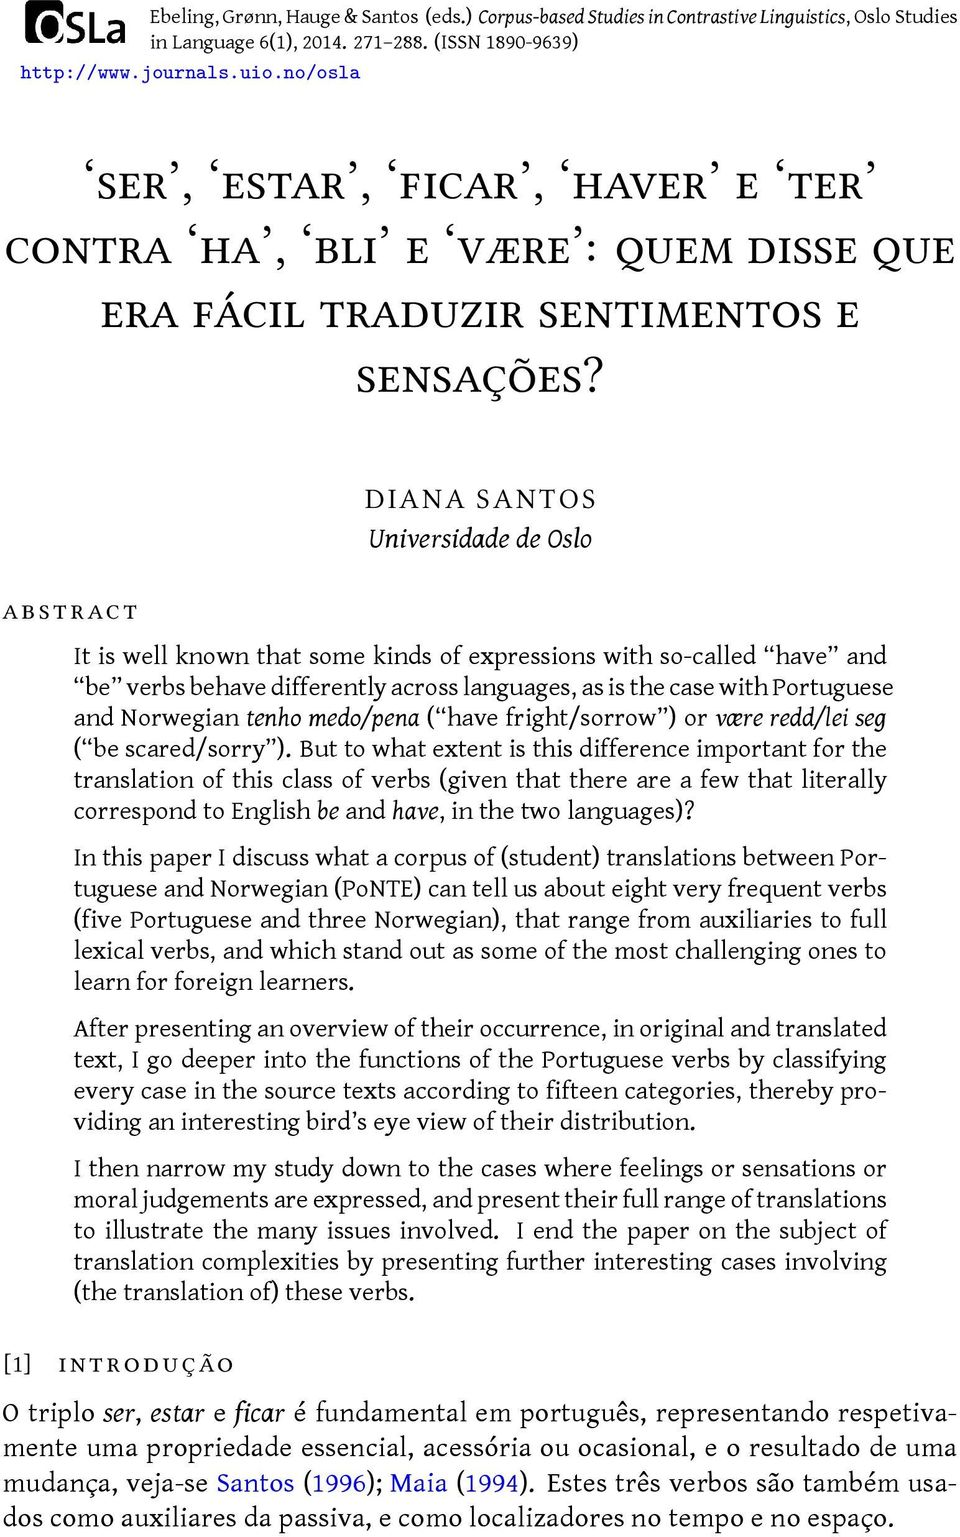 abstract DIANA SANTOS Universidade de Oslo It is well known that some kinds of expressions with so-called have and be verbs behave differently across languages, as is the case with Portuguese and